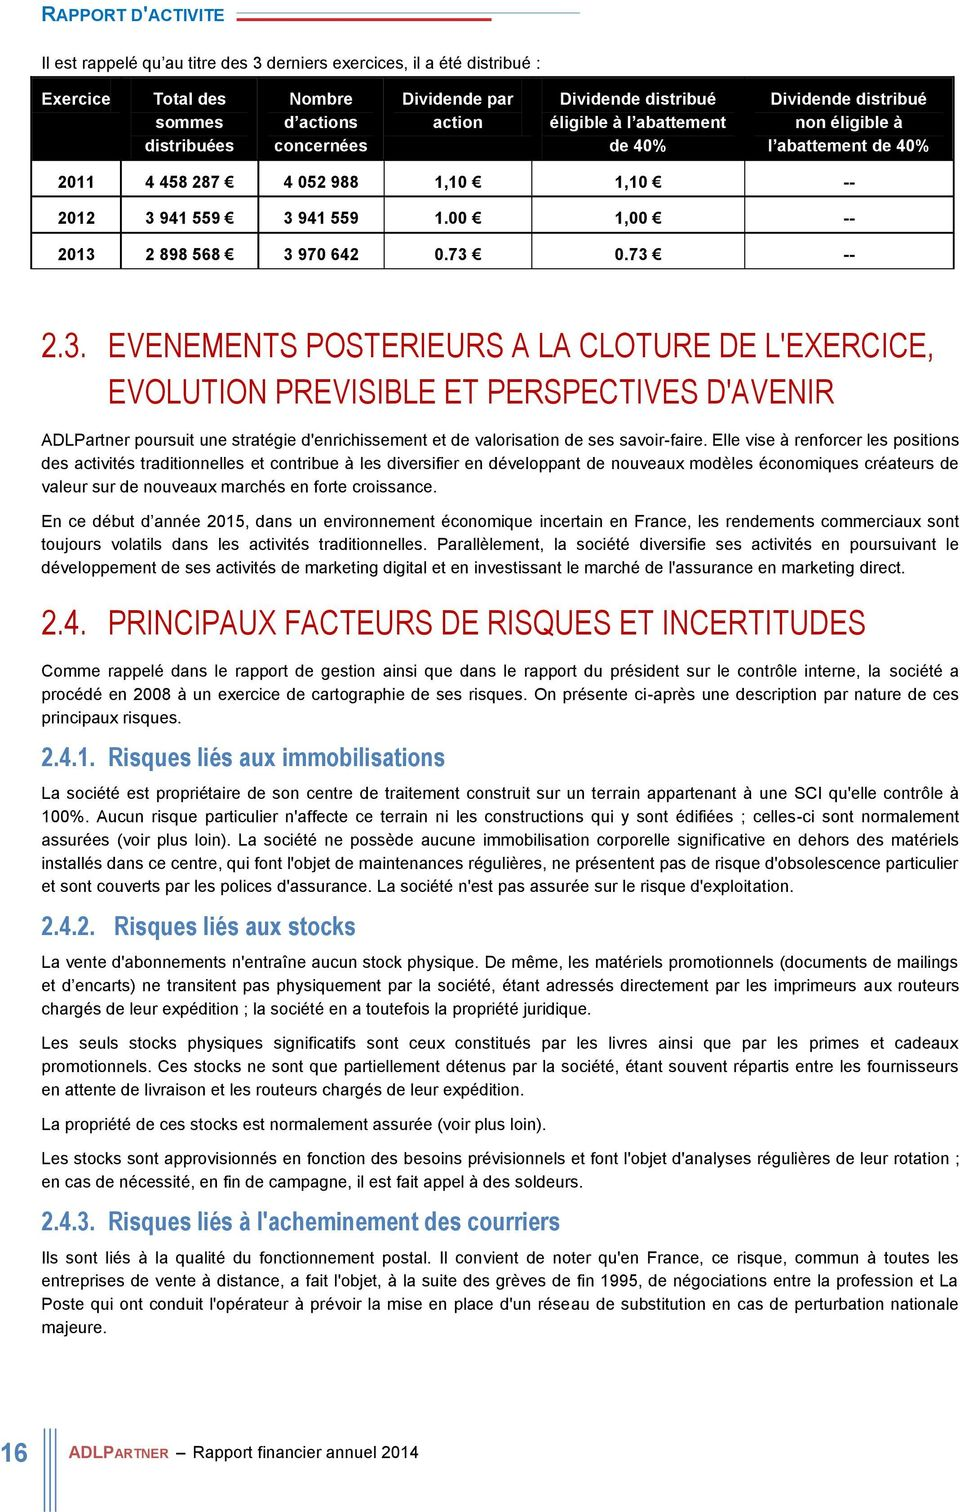 73 -- 2.3. EVENEMENTS POSTERIEURS A LA CLOTURE DE L'EXERCICE, EVOLUTION PREVISIBLE ET PERSPECTIVES D'AVENIR ADLPartner poursuit une stratégie d'enrichissement et de valorisation de ses savoir-faire.